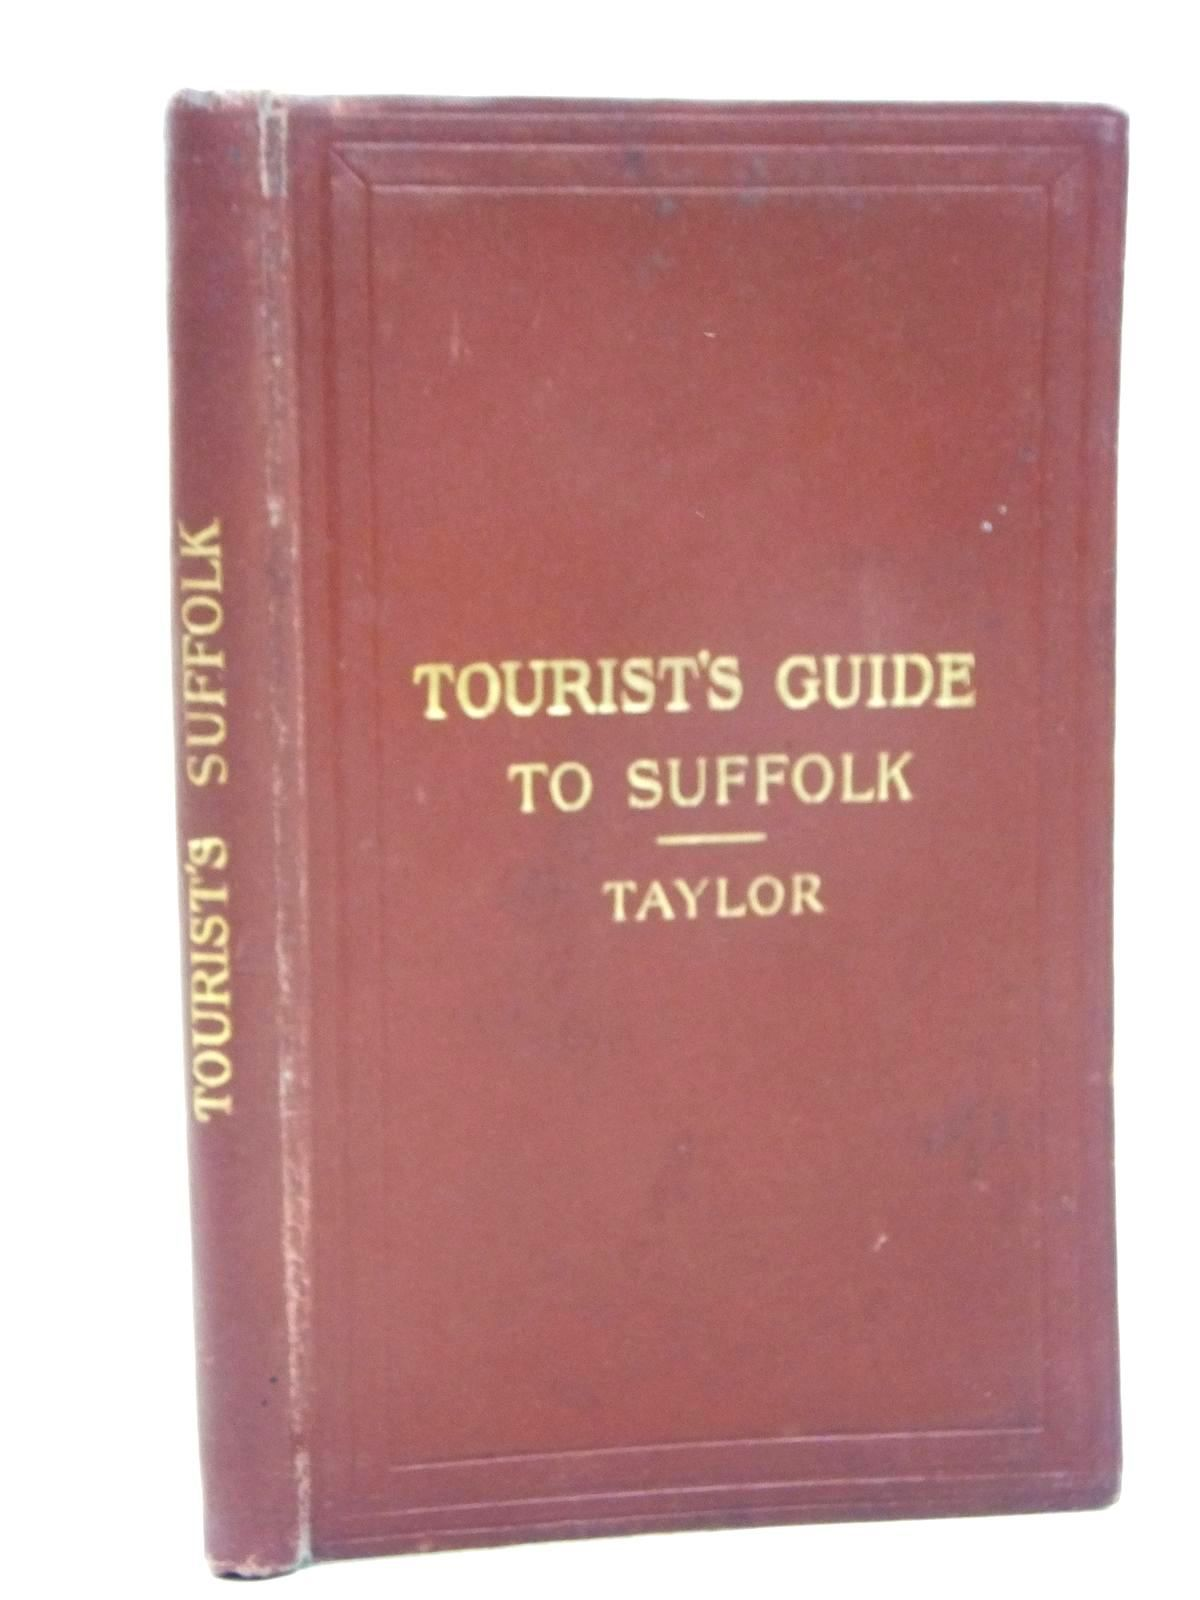 Photo of TOURIST'S GUIDE TO THE COUNTY OF SUFFOLK written by Taylor, J.E. published by Edward Stanford (STOCK CODE: 1609467)  for sale by Stella & Rose's Books